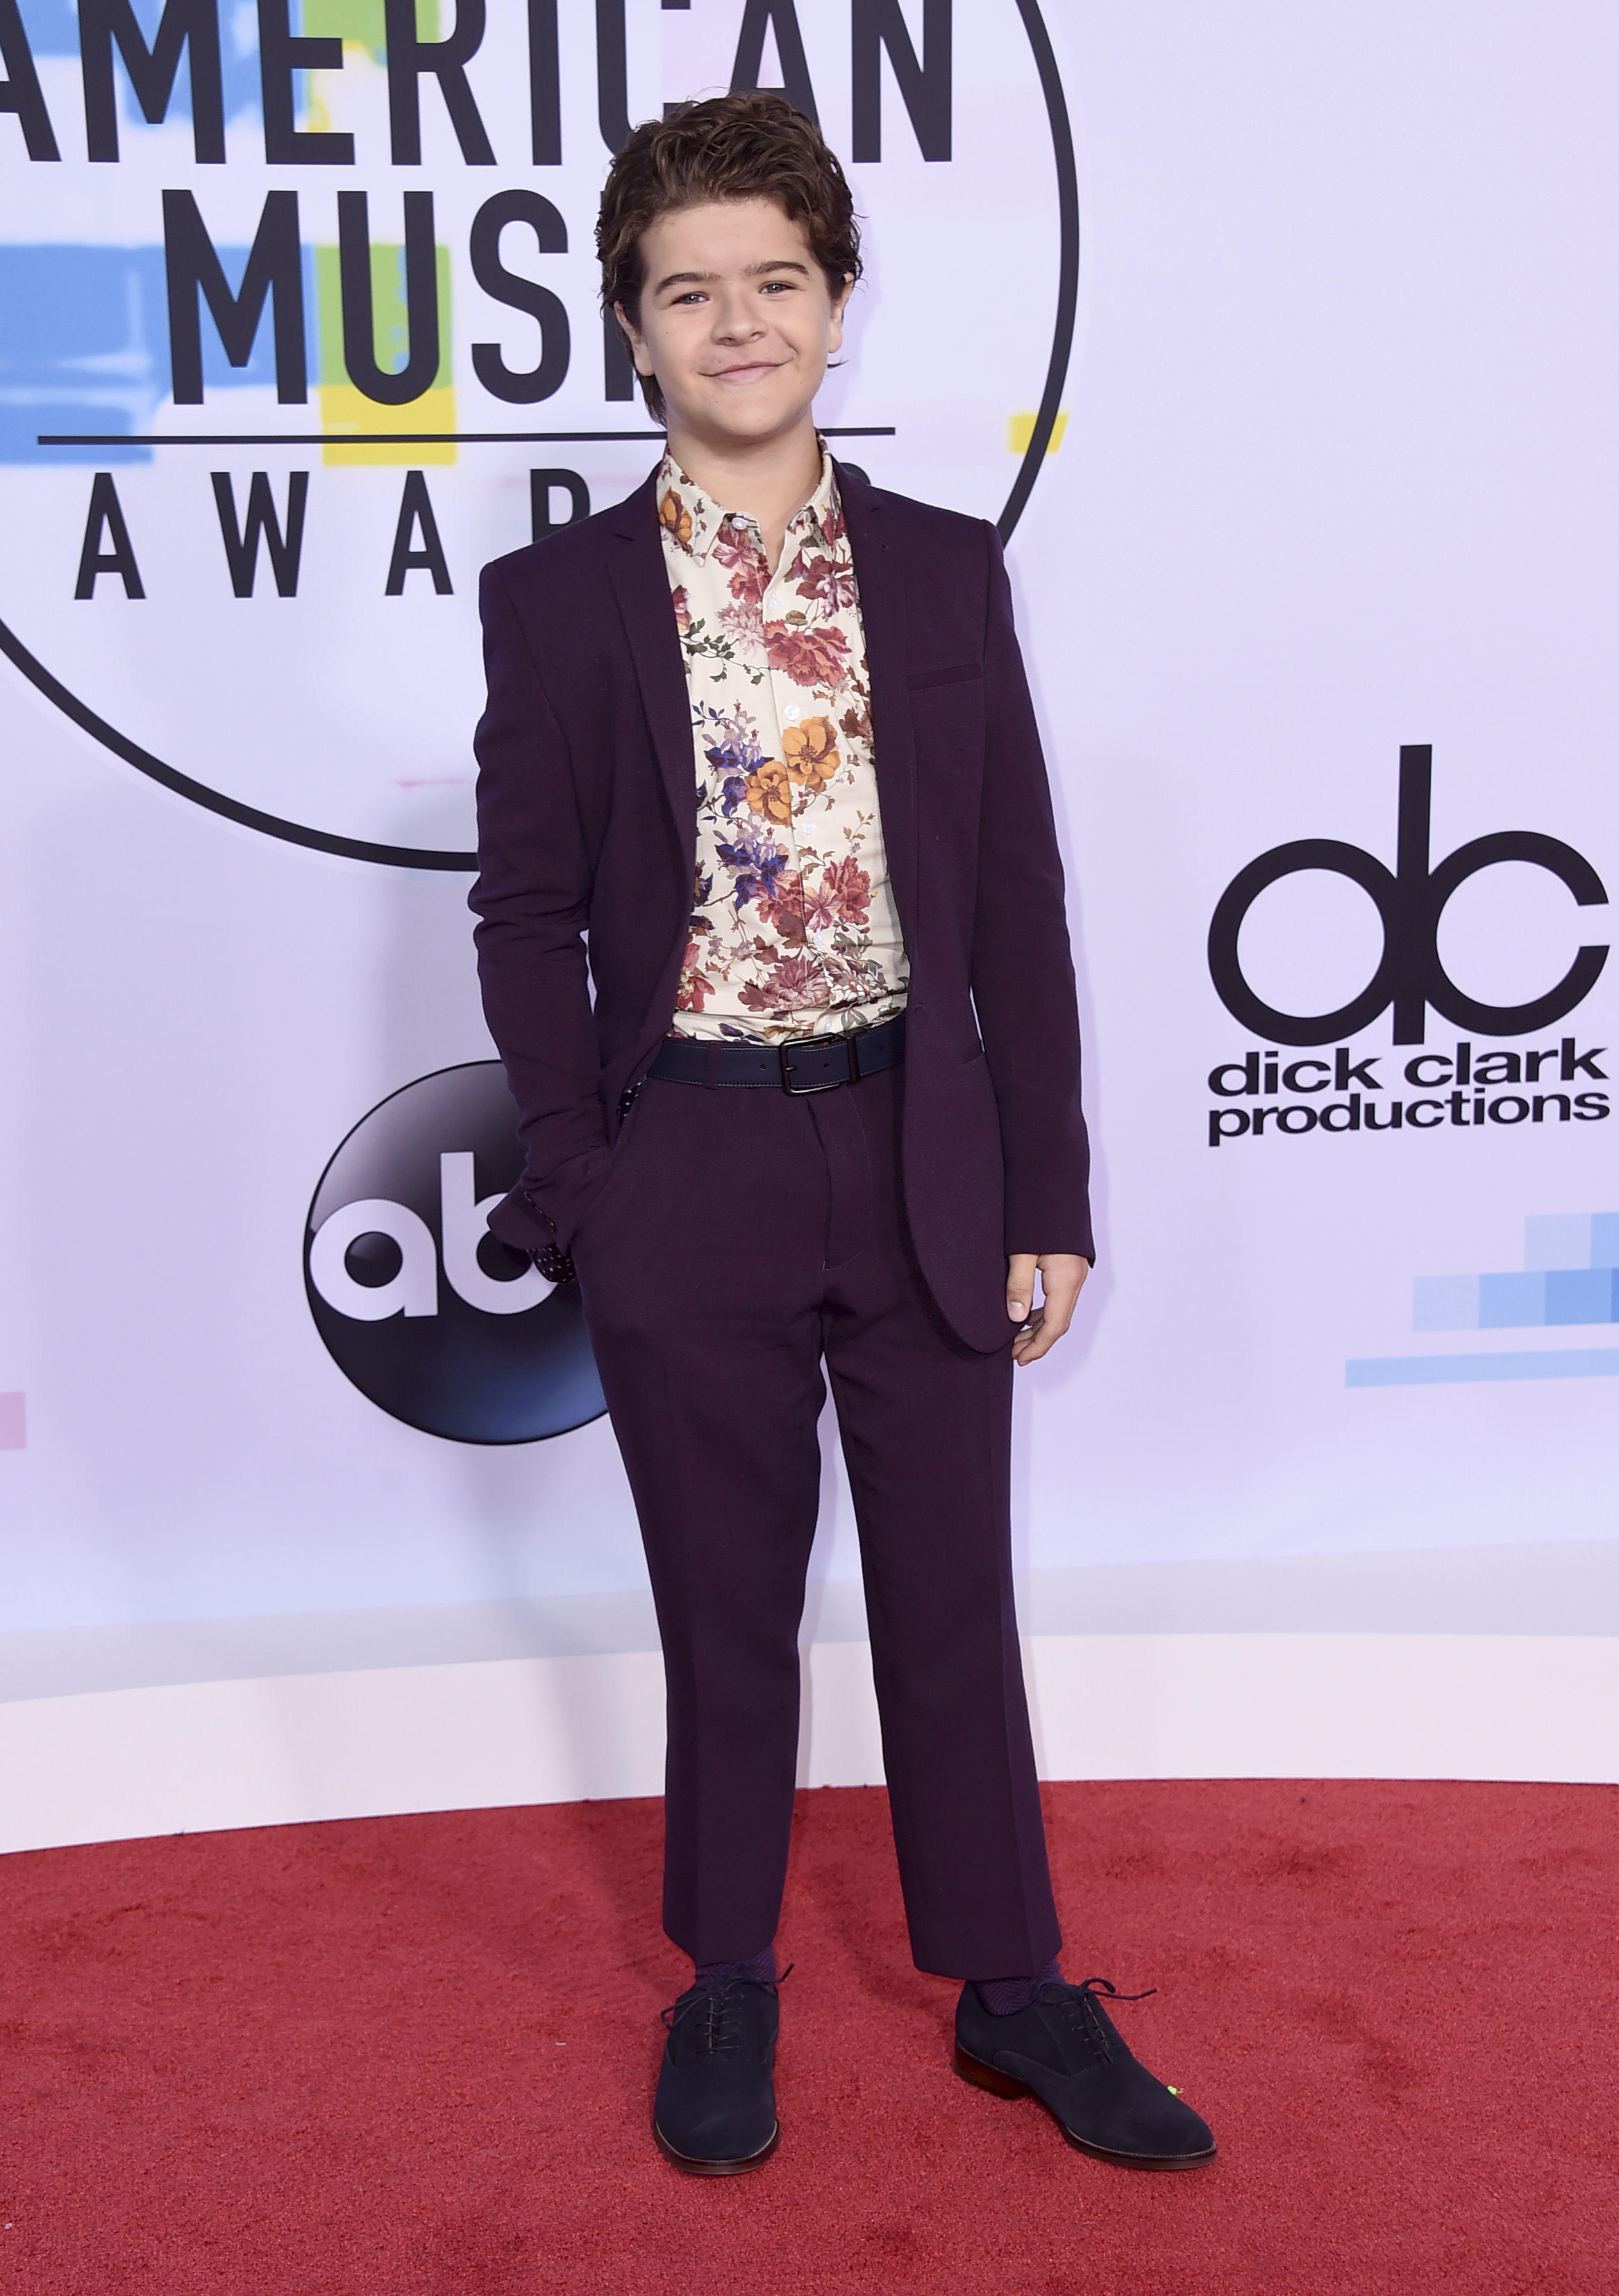 <div class='meta'><div class='origin-logo' data-origin='none'></div><span class='caption-text' data-credit='Jordan Strauss/Invision/AP'>Gaten Matarazzo arrives at the American Music Awards at the Microsoft Theater on Sunday, Nov. 19, 2017, in Los Angeles.</span></div>